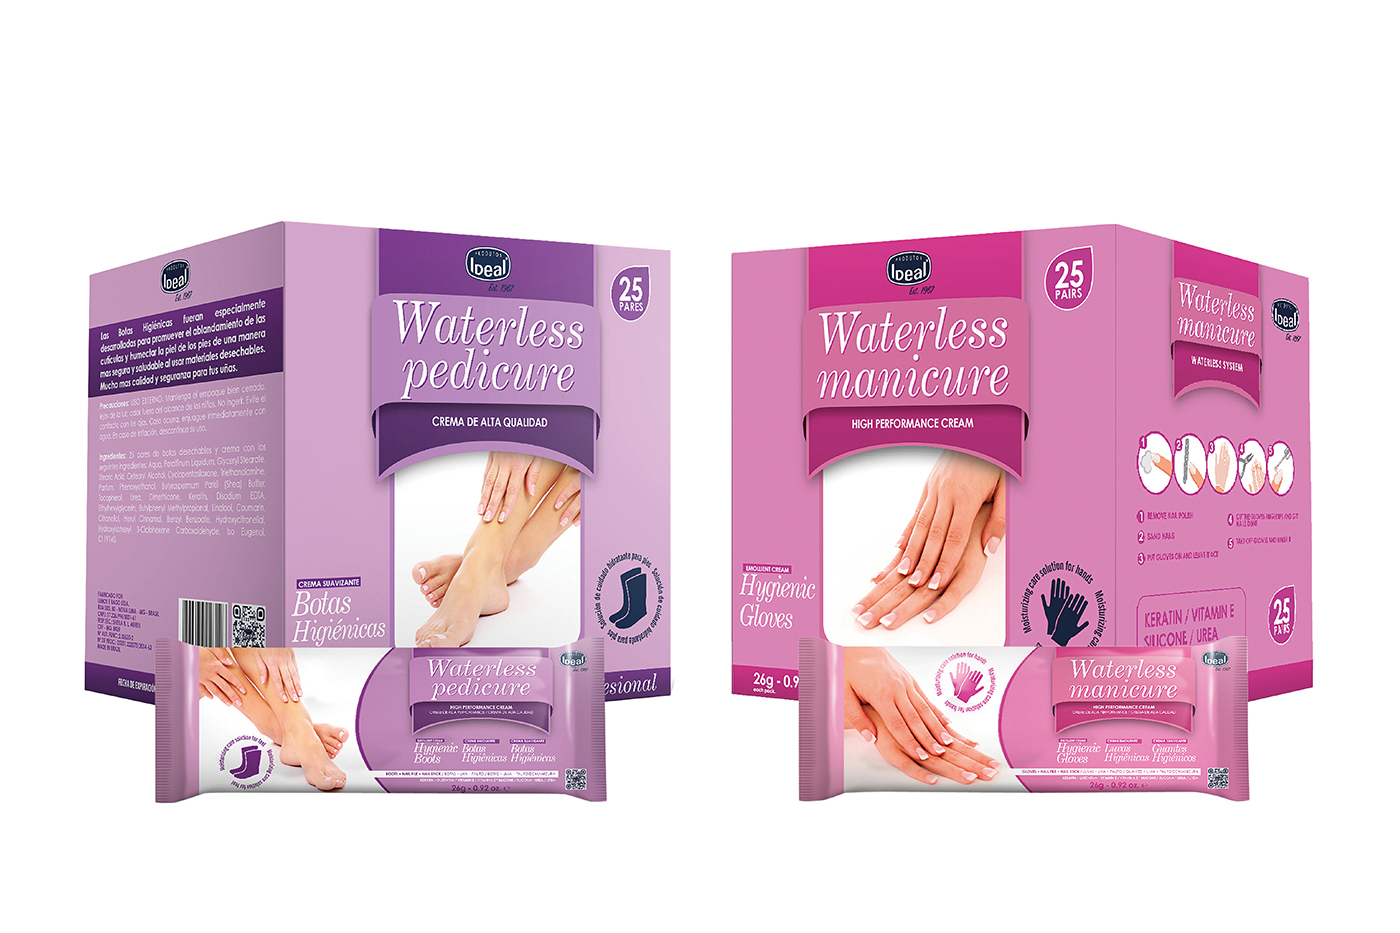 Ideal's Waterless Mani-Pedi Kit